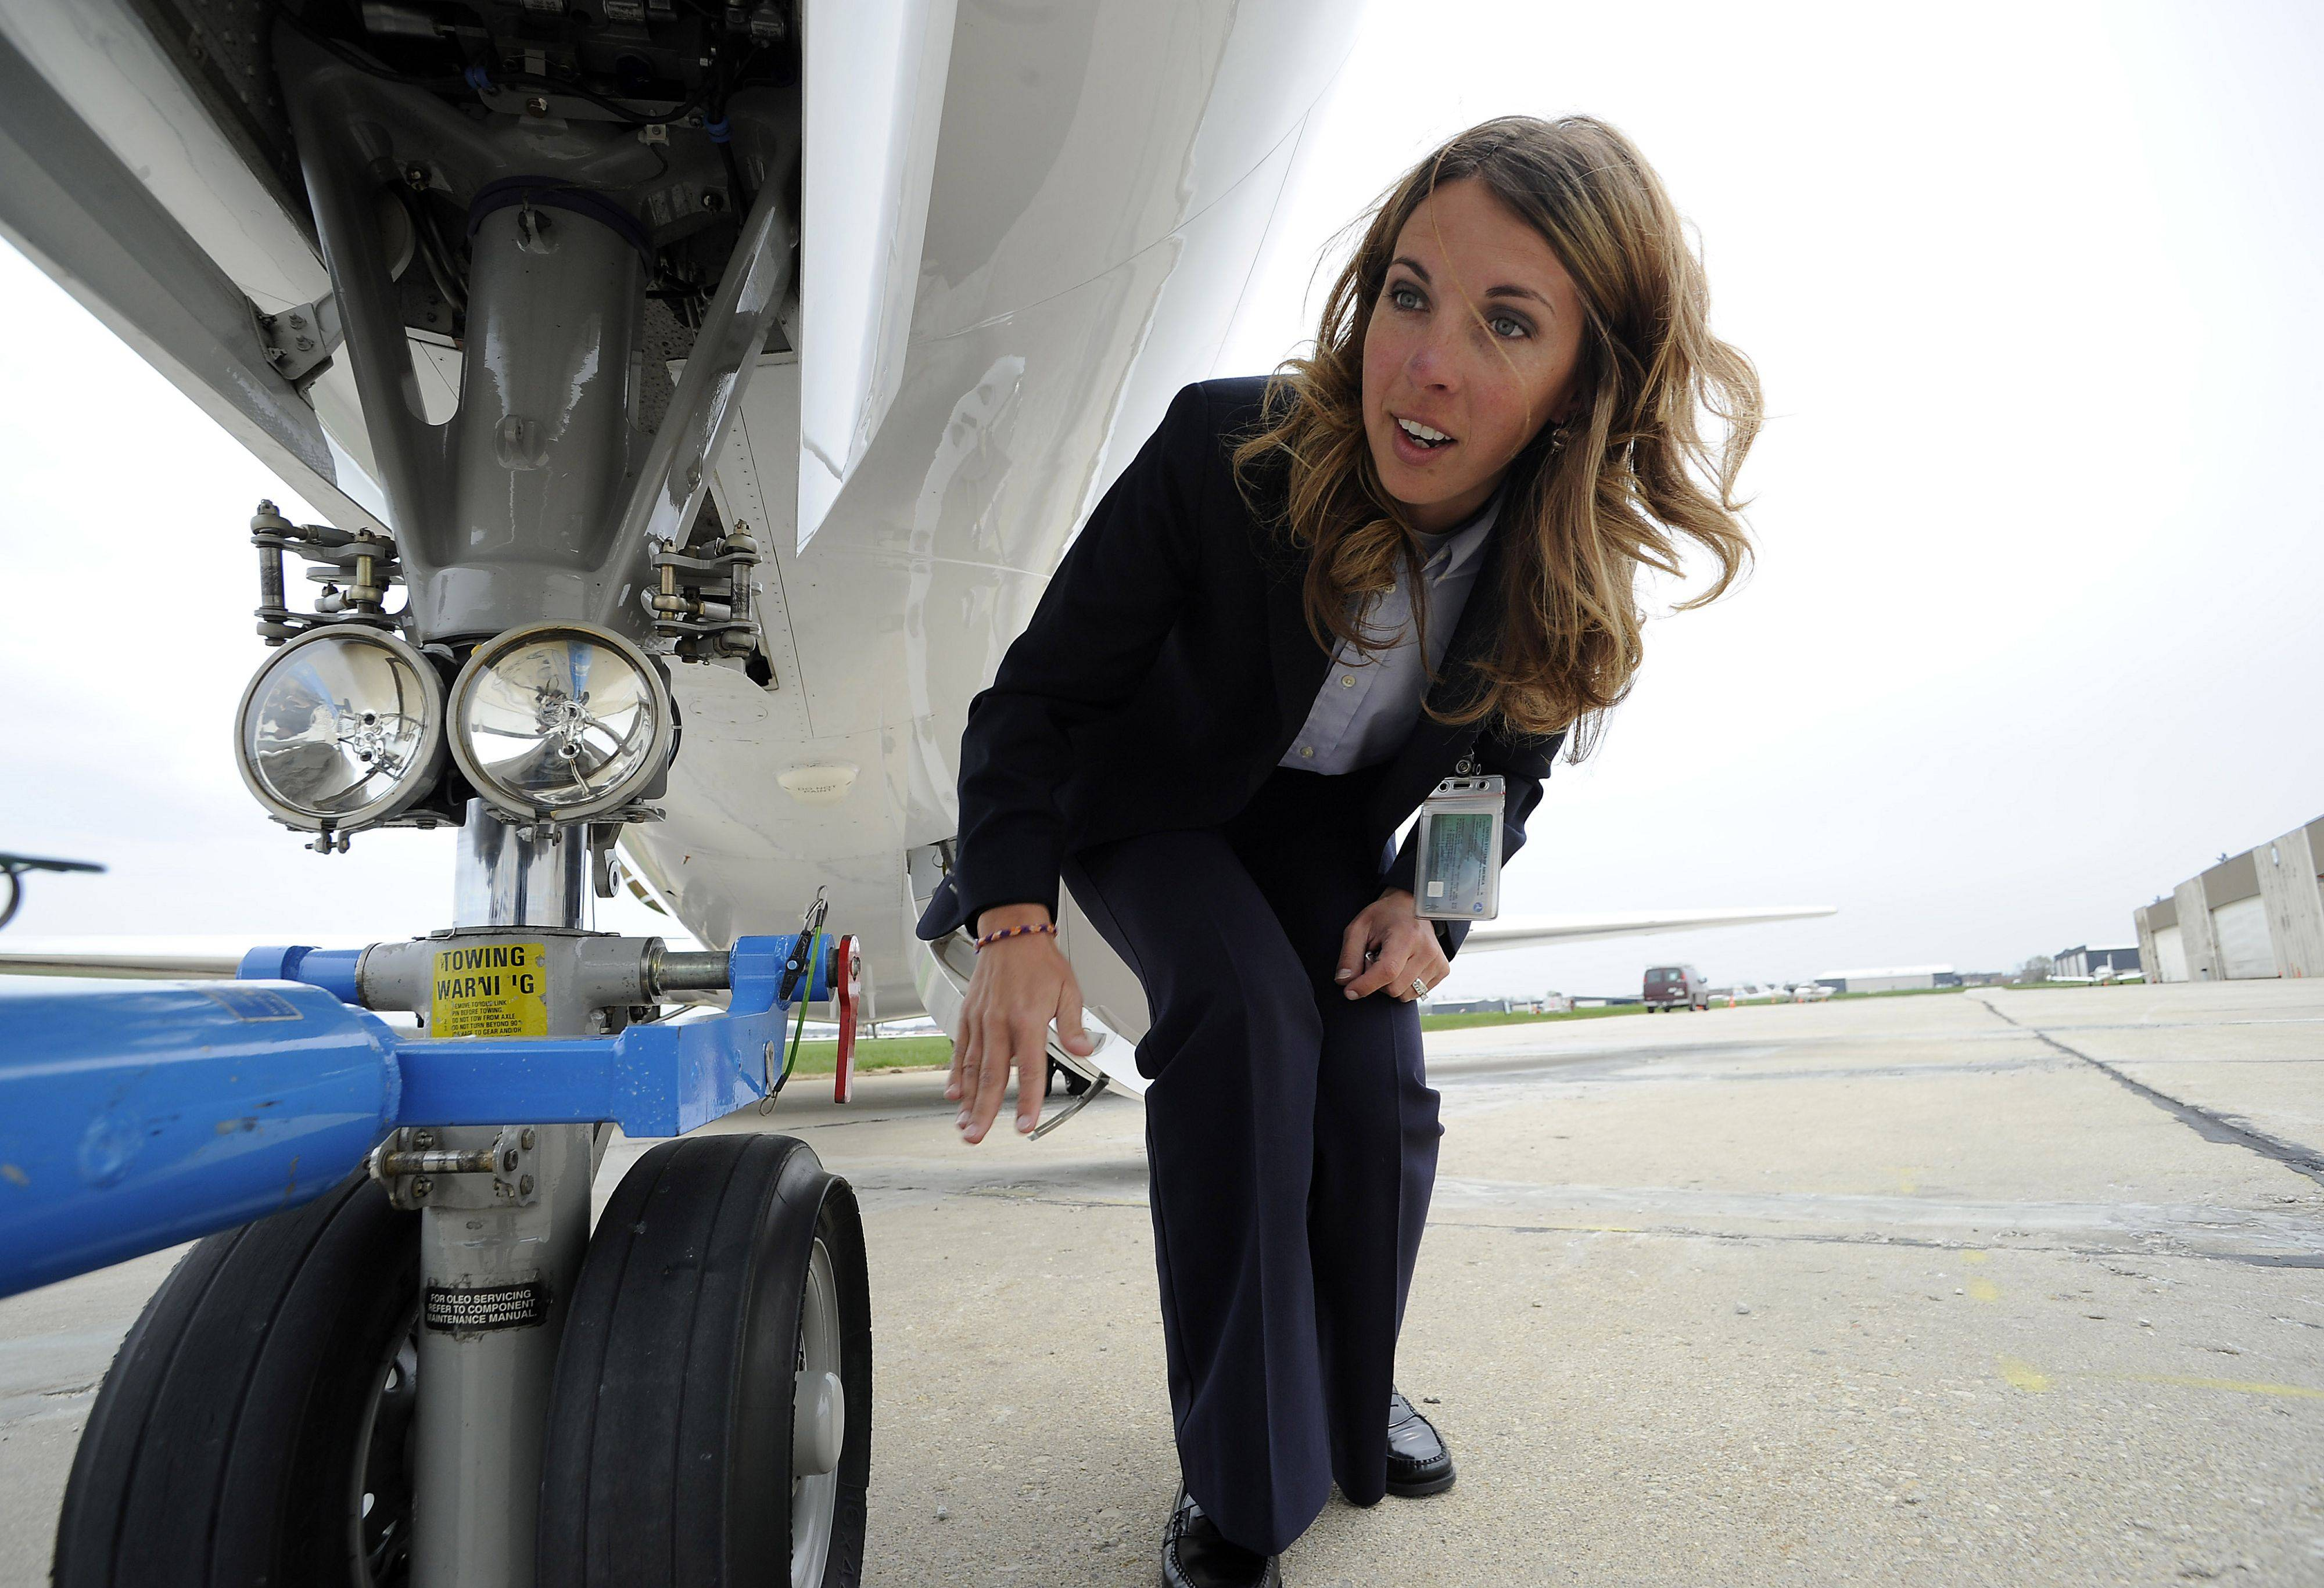 Amanda Sorenson of Priester Aviation checks the landing gear tires, making sure there are no cuts to ensure her Citation Sovereign aircraft is air worthy before she departs from Chicago Executive Airport.